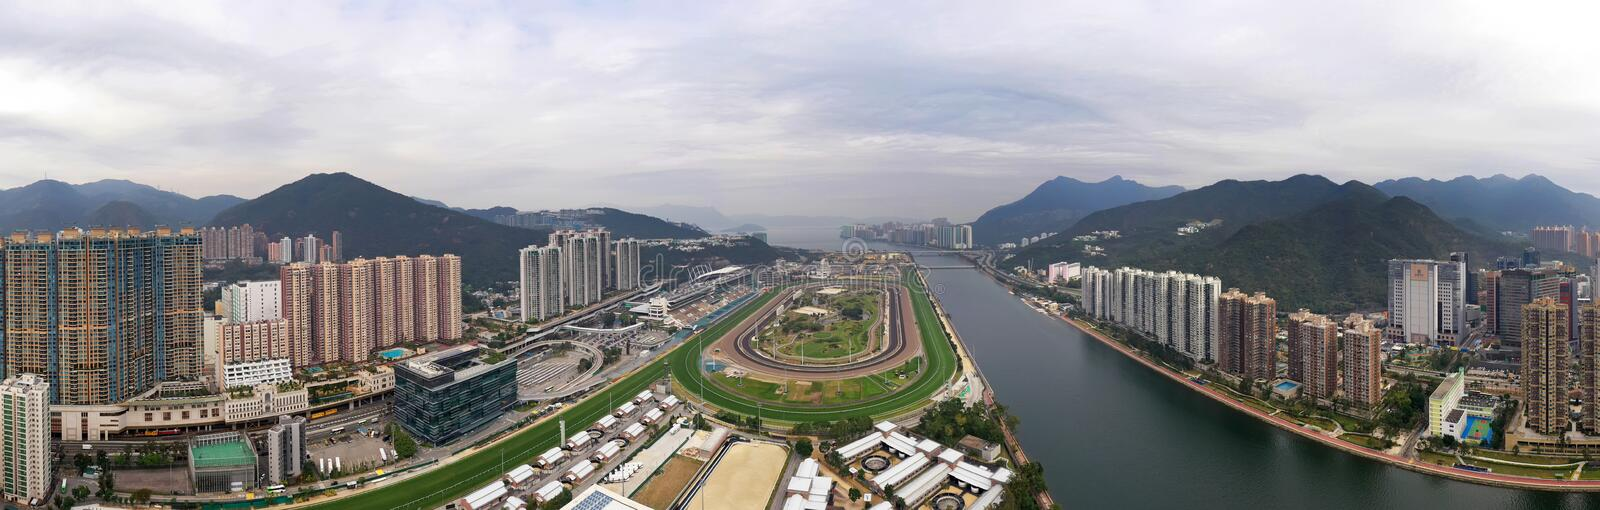 Sha Tin Racecourse Panorama foto de stock